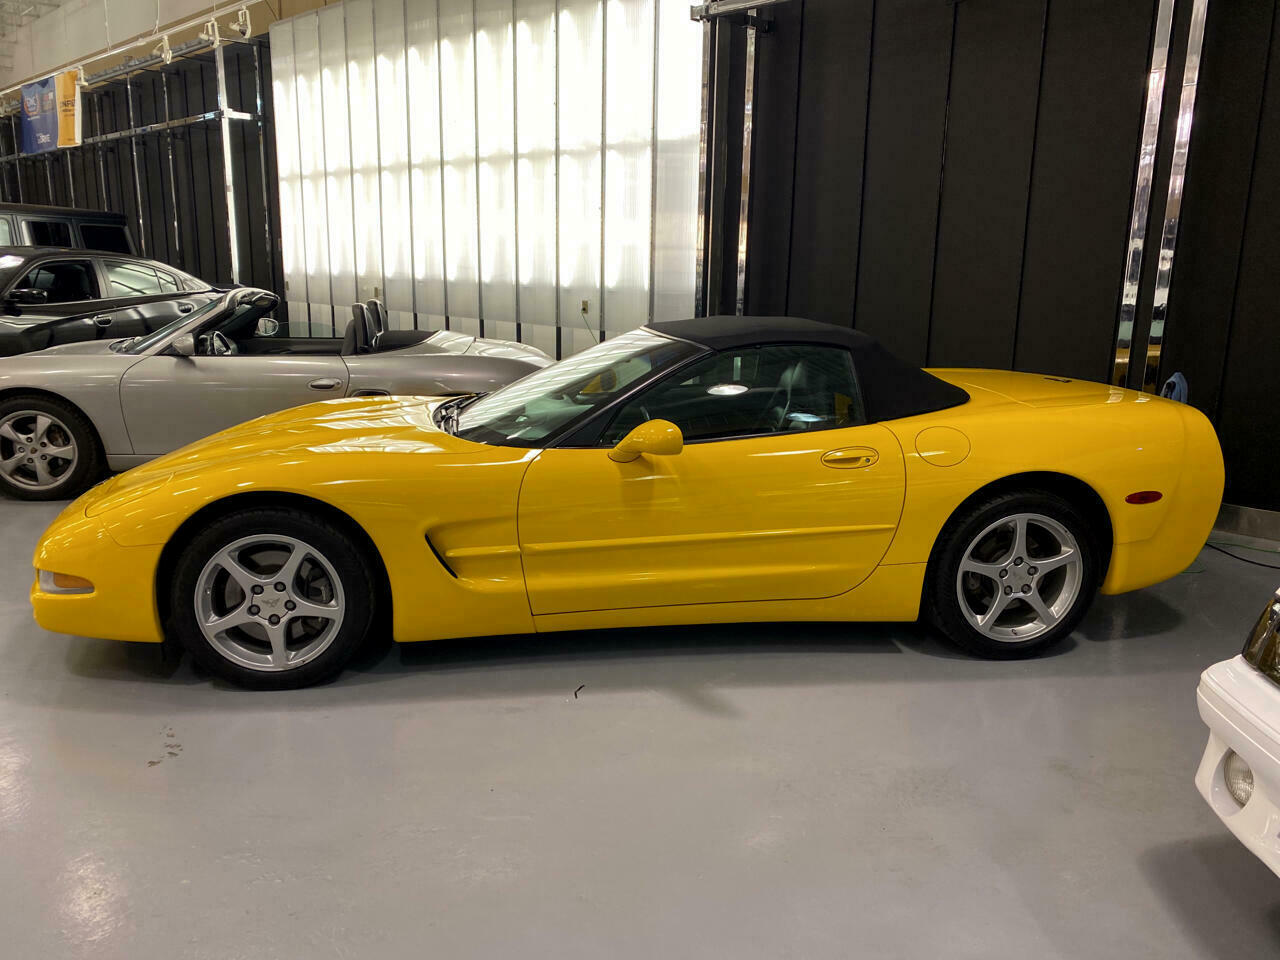 2002 Yellow Chevrolet Corvette Convertible  | C5 Corvette Photo 5